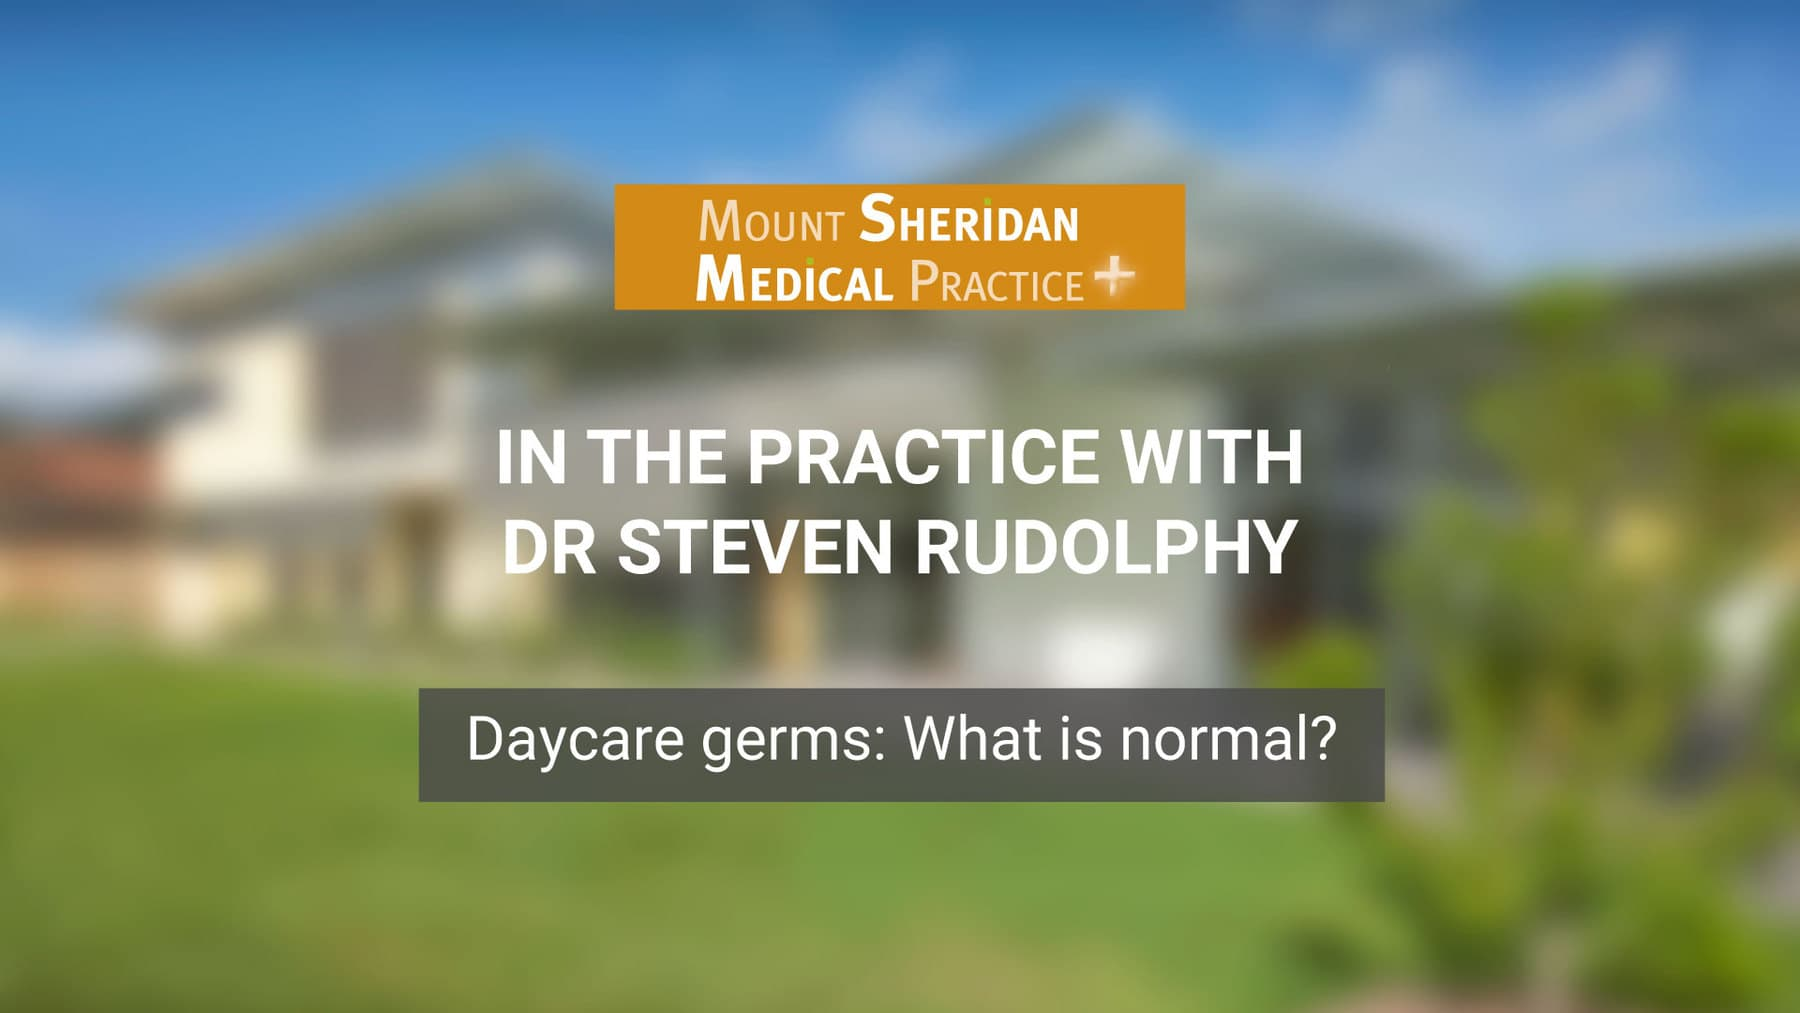 Daycare Germs and Illnesses: What is Normal?